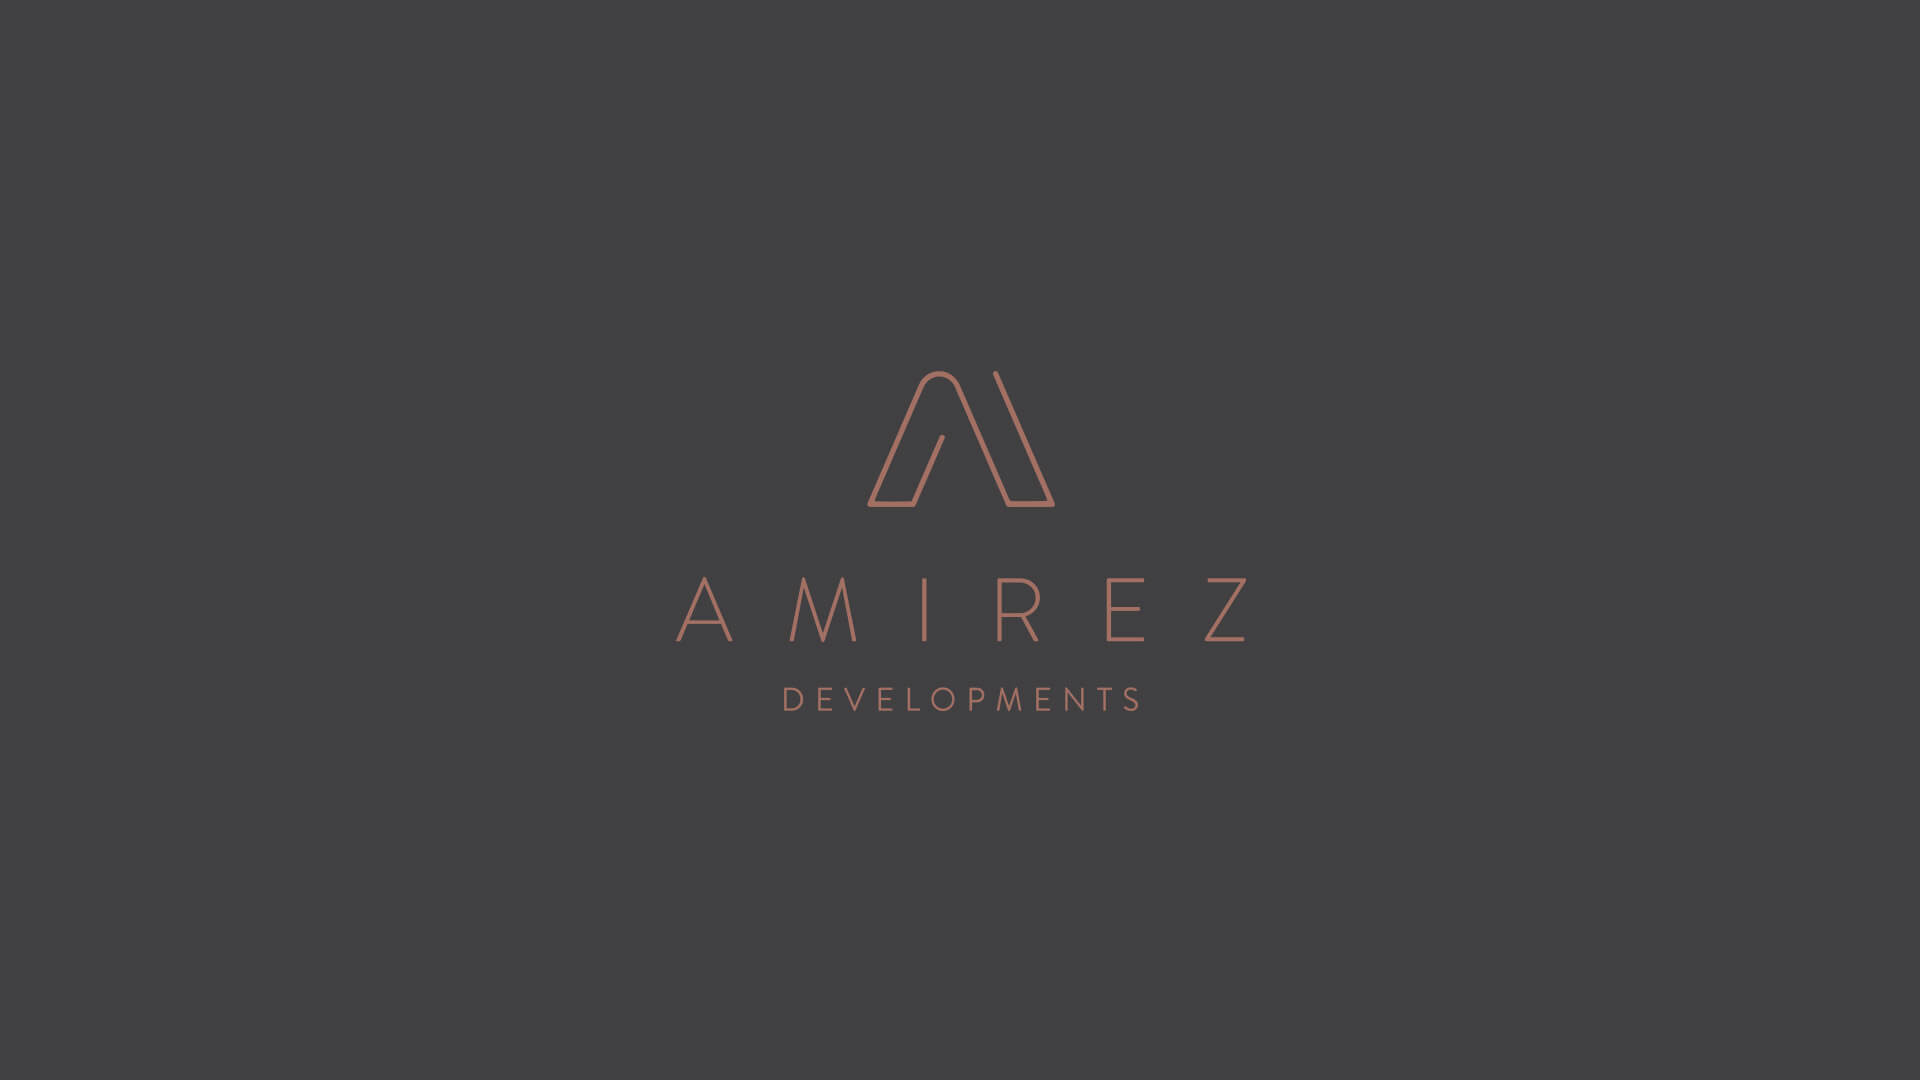 Amirez Developments | We Are 778 Bournemouth Poole Branding Graphic Design Web Development Creative Agency